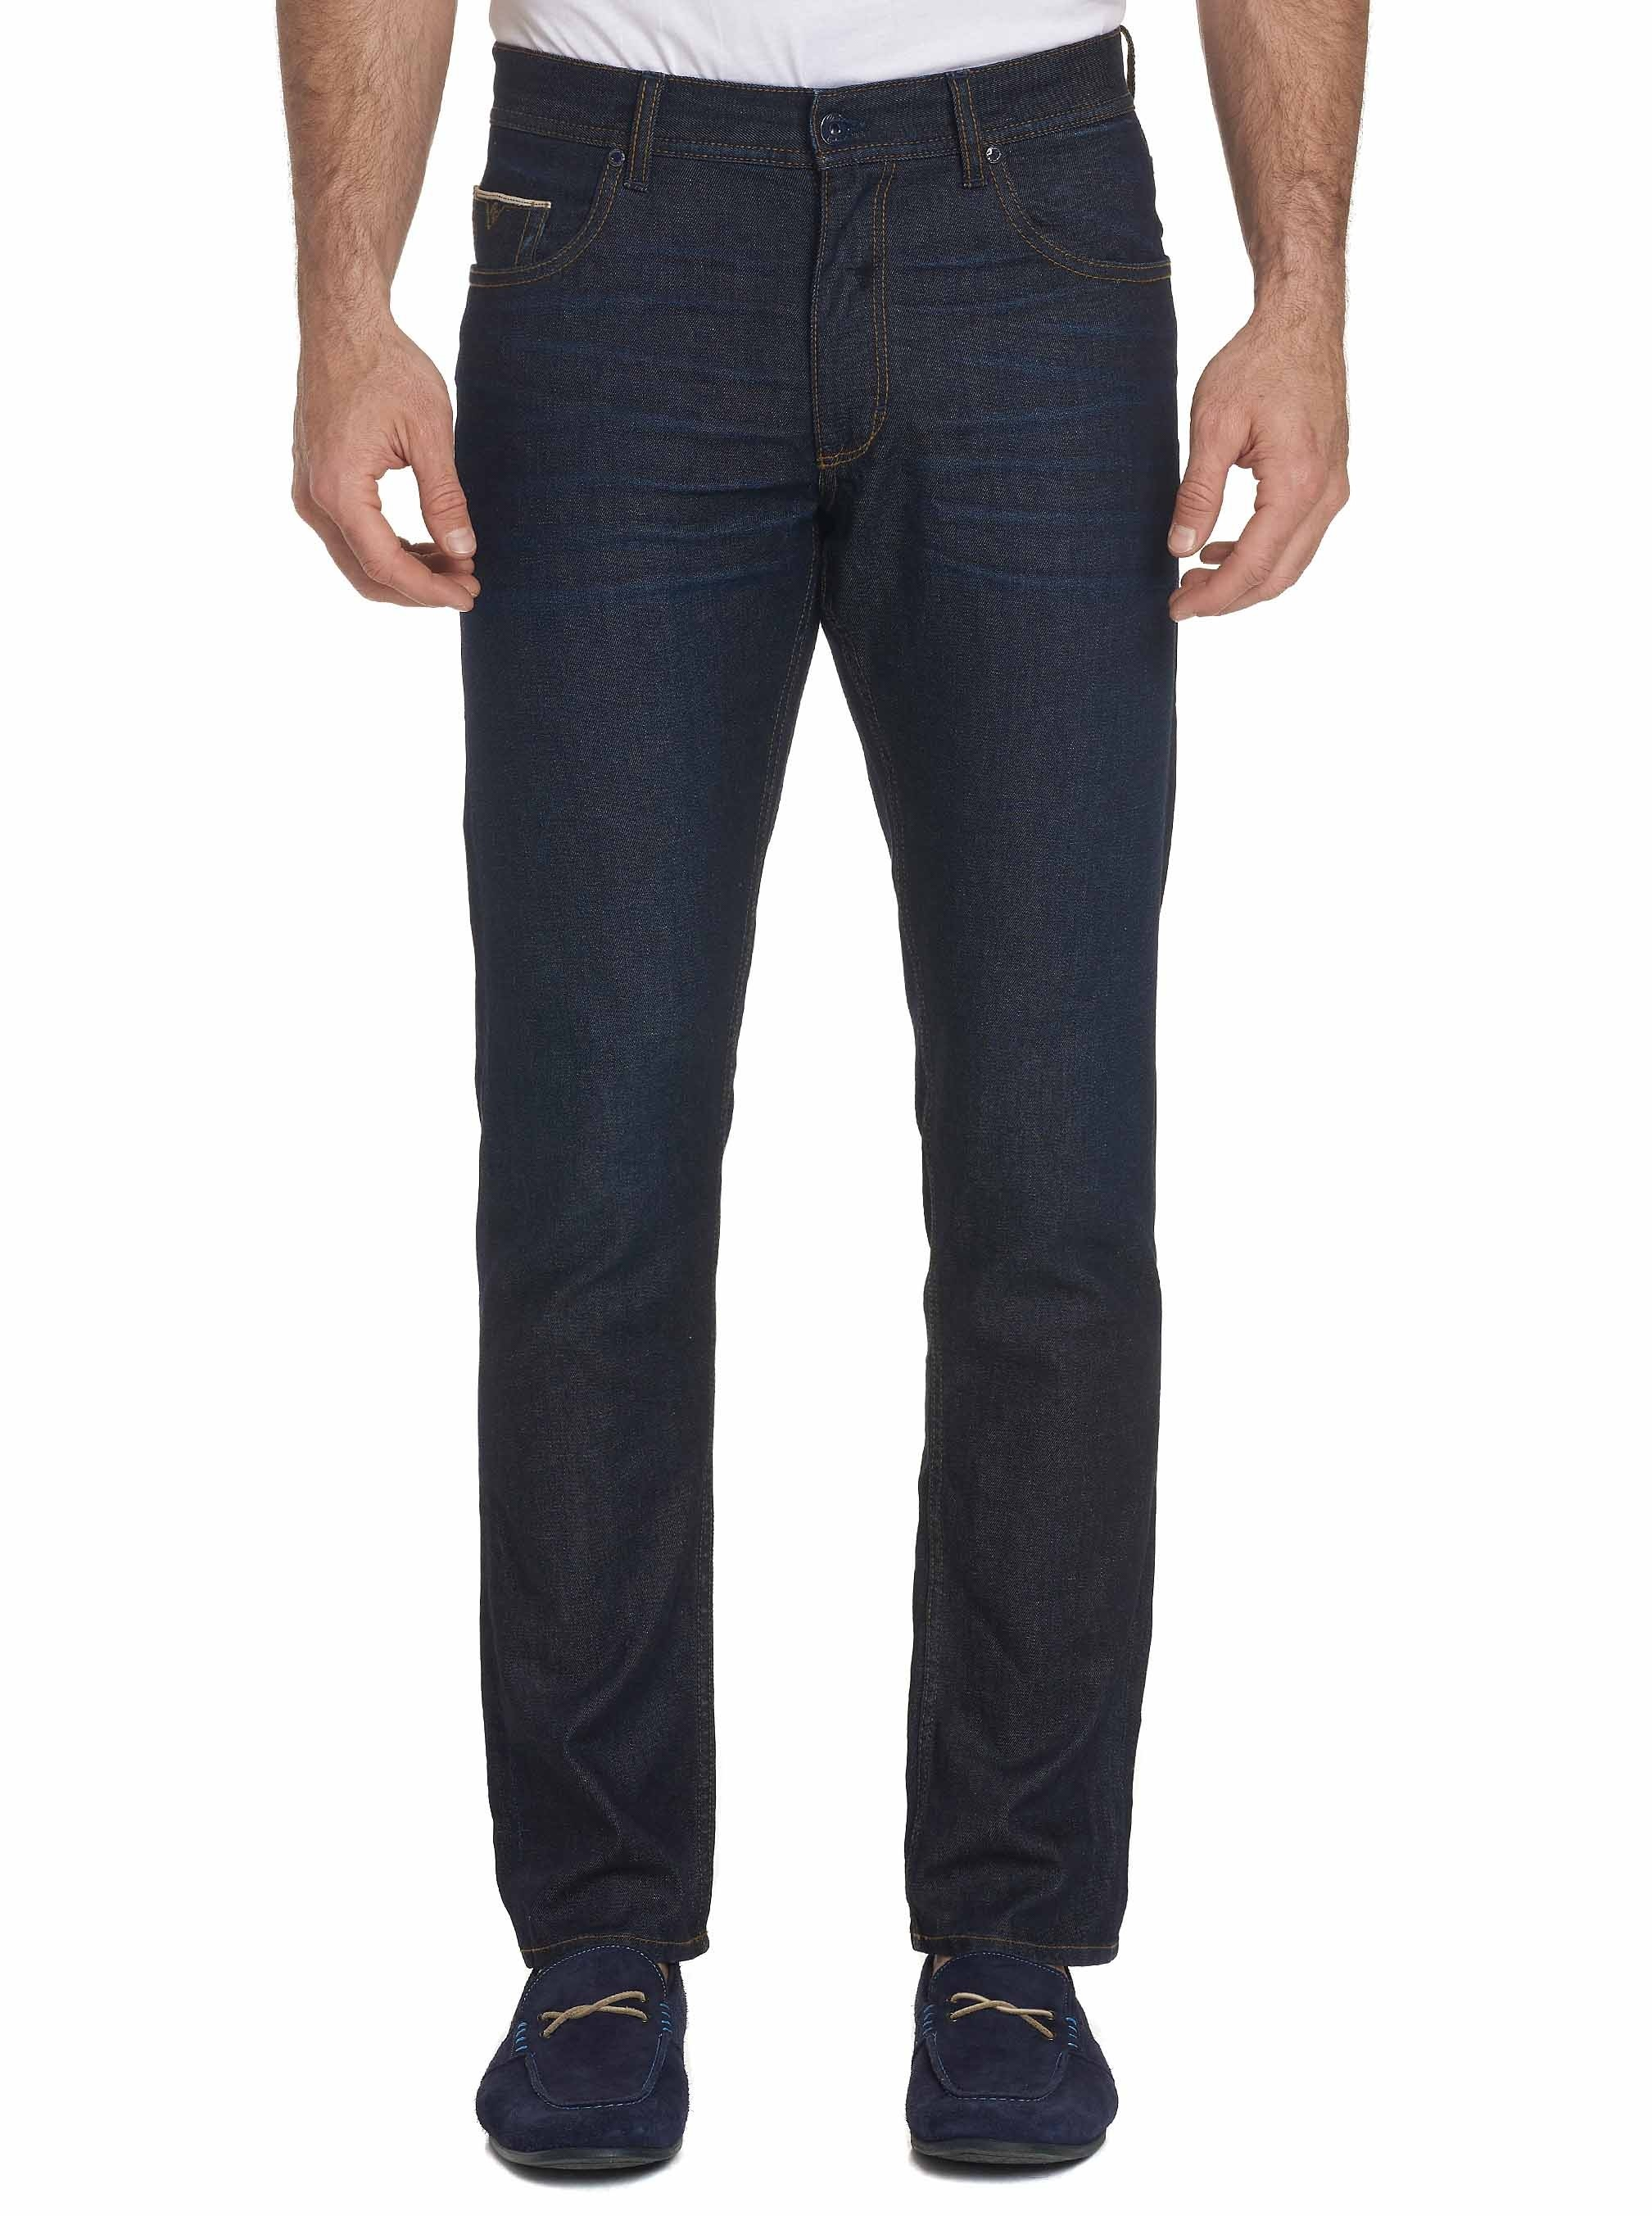 Robert Graham Denham Perfect Fit Jeans Indigo